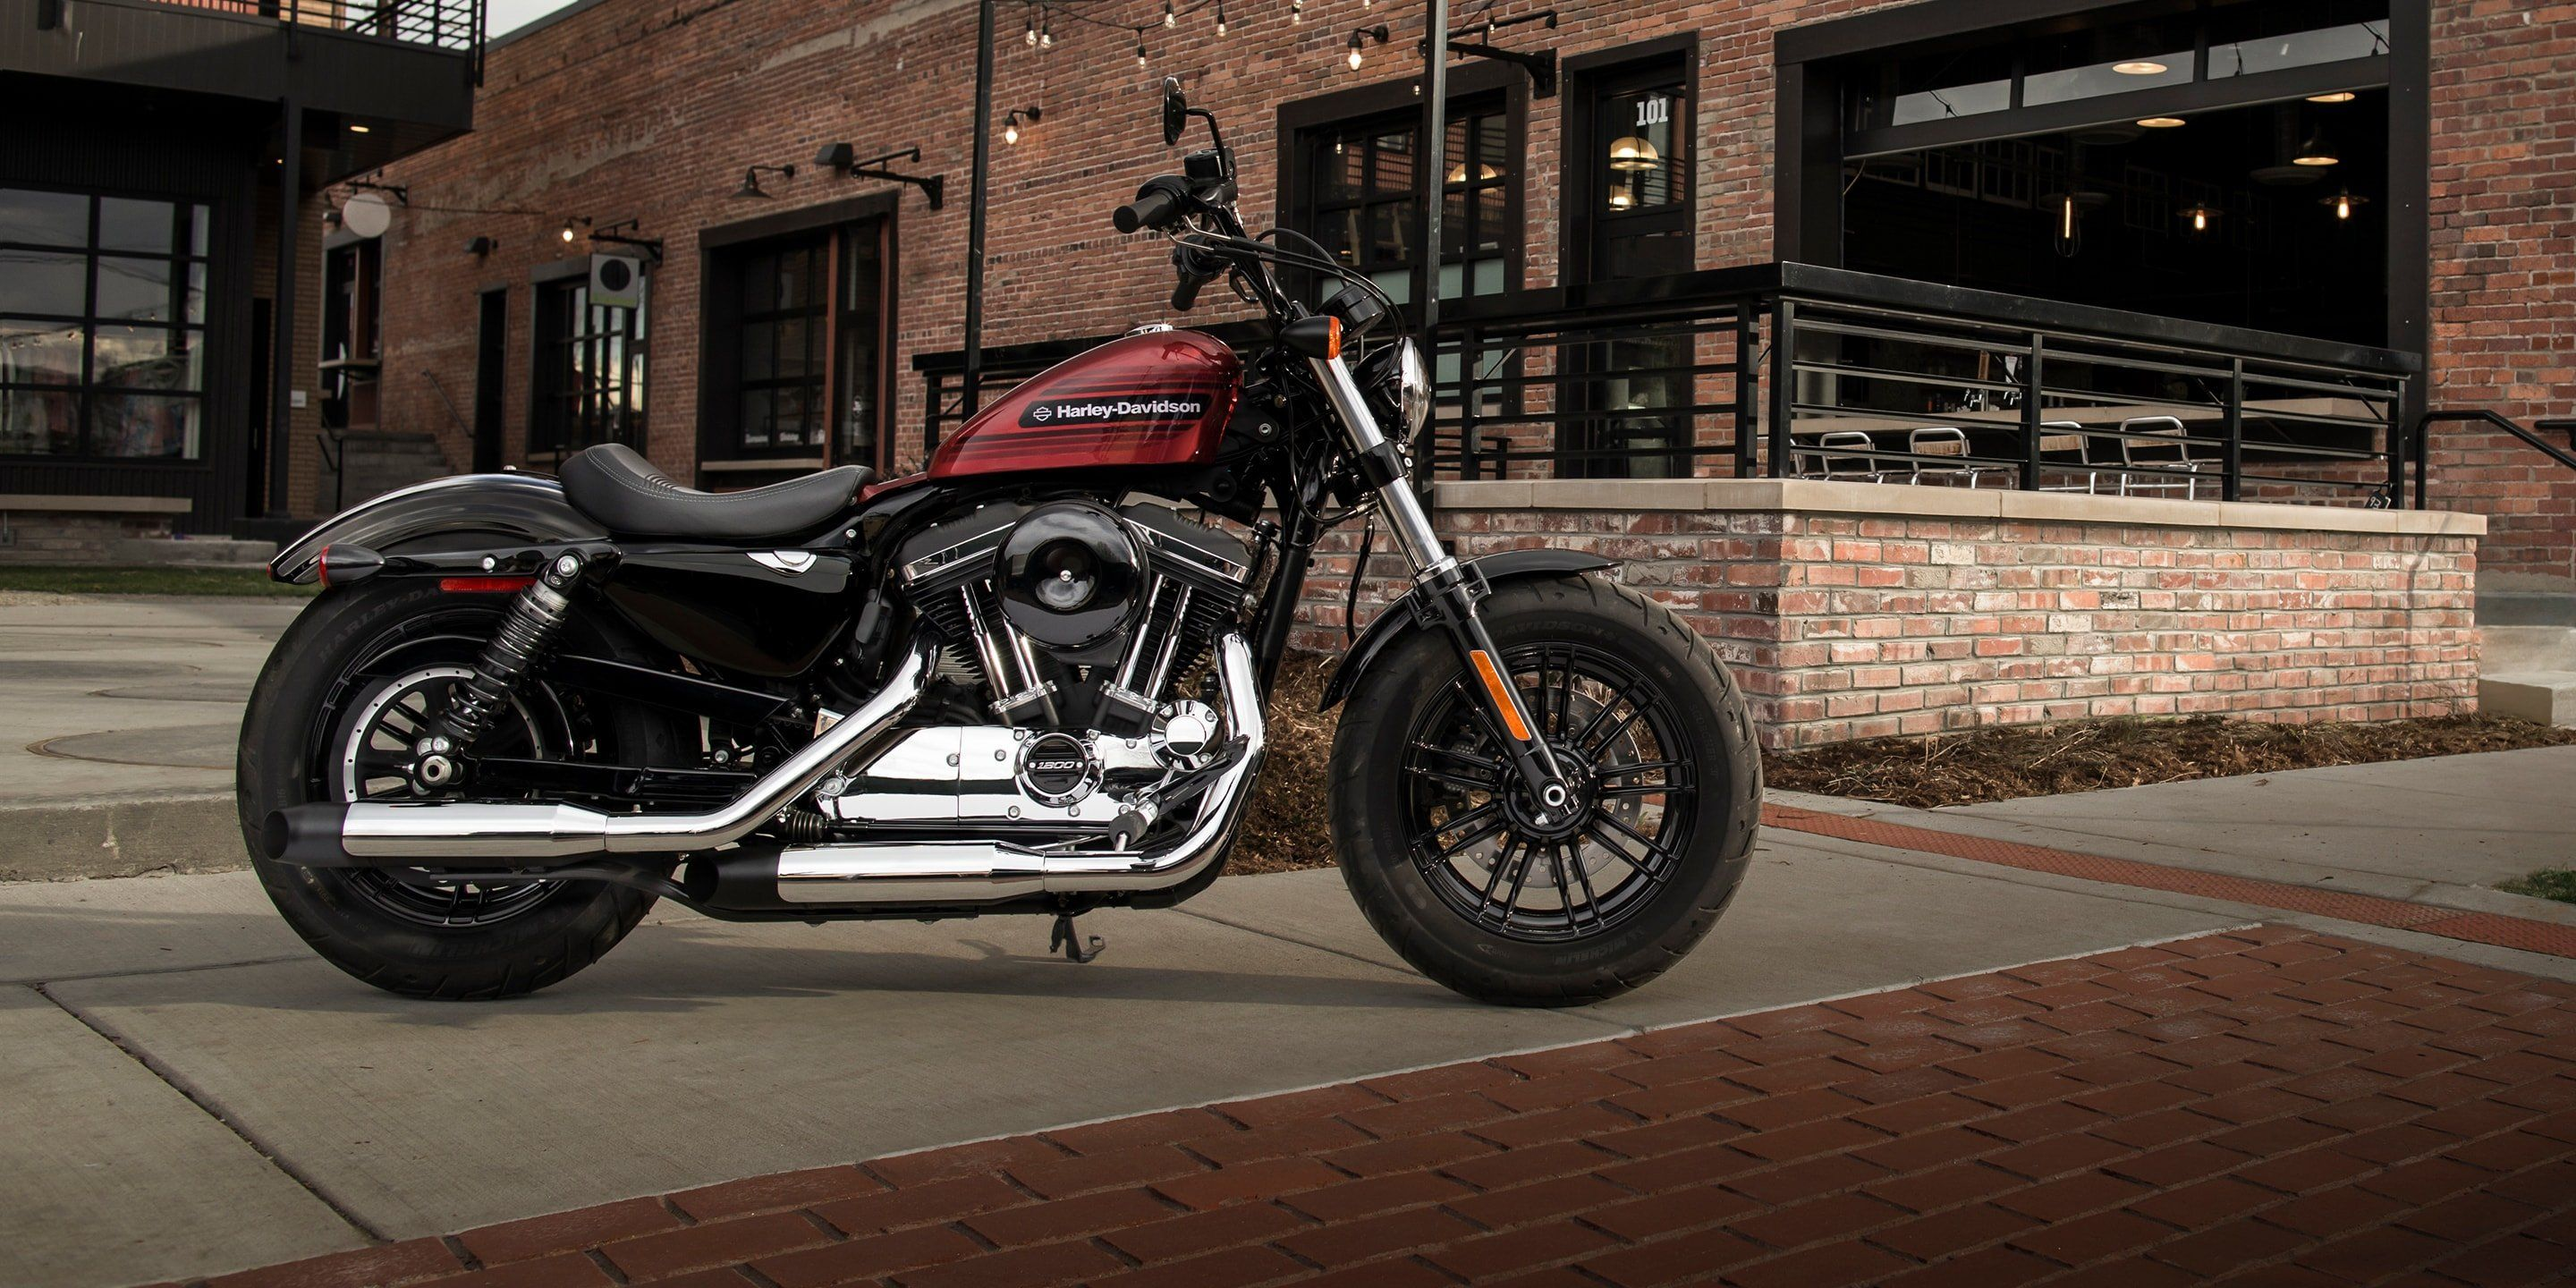 Harley Davidson 48 Special 2019 Specs From 2019 Forty Eight Special Motorcycle Harley Davi Motorcycle Harley Classic Harley Davidson Harley Davidson Pictures